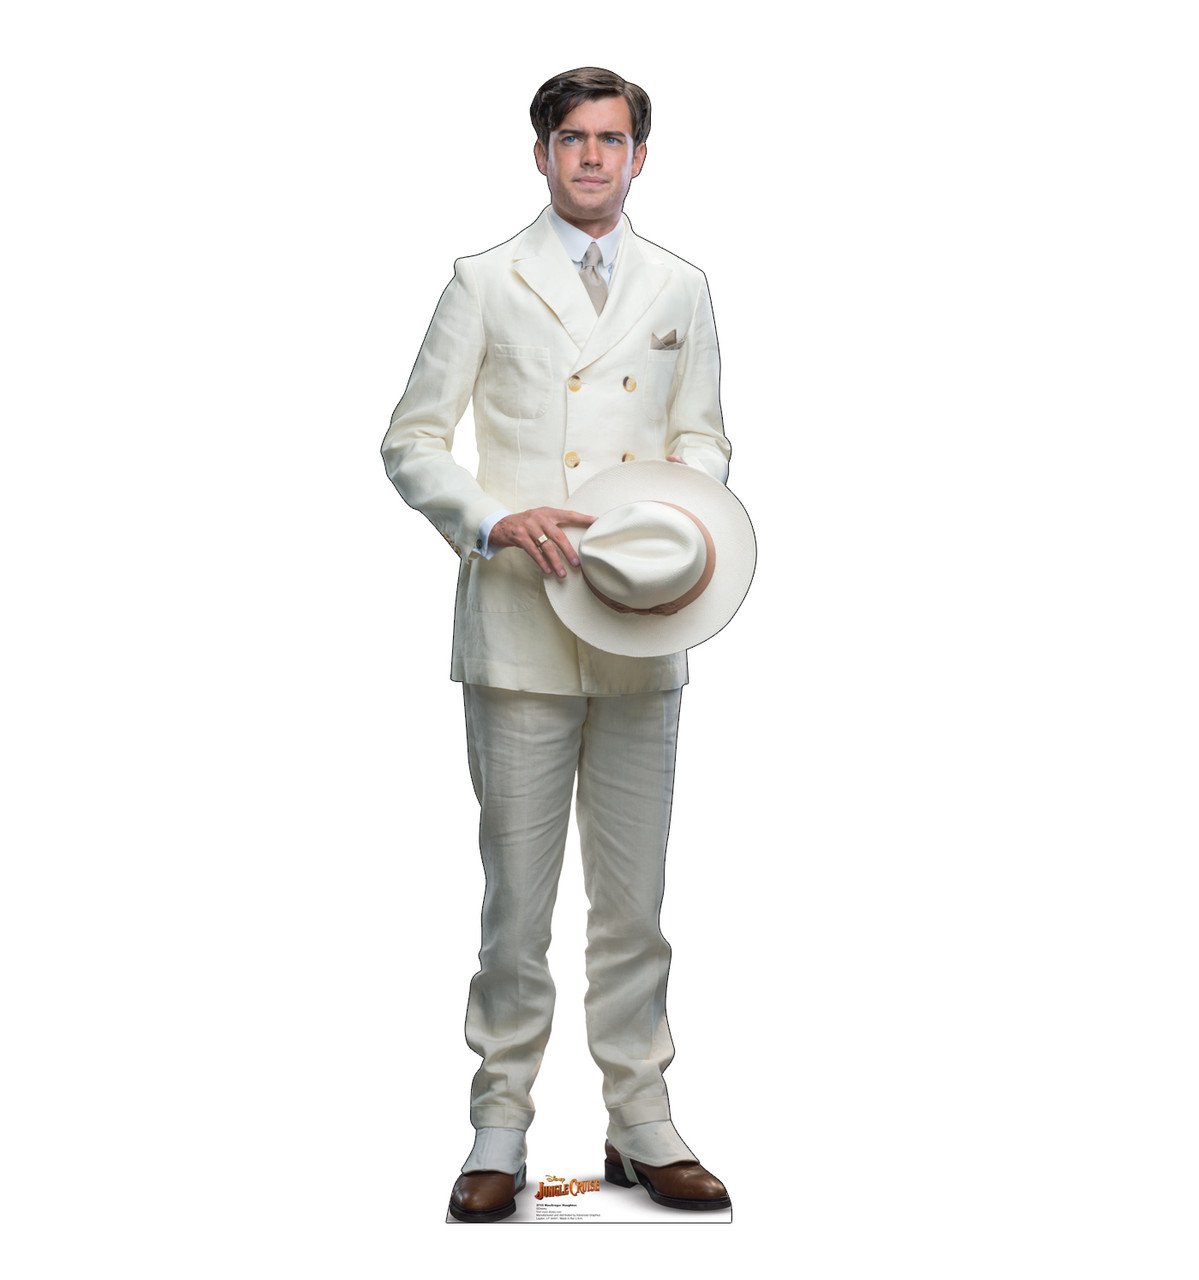 Life-size cardboard standee of MacGregor Houghton from Jungle Cruise.